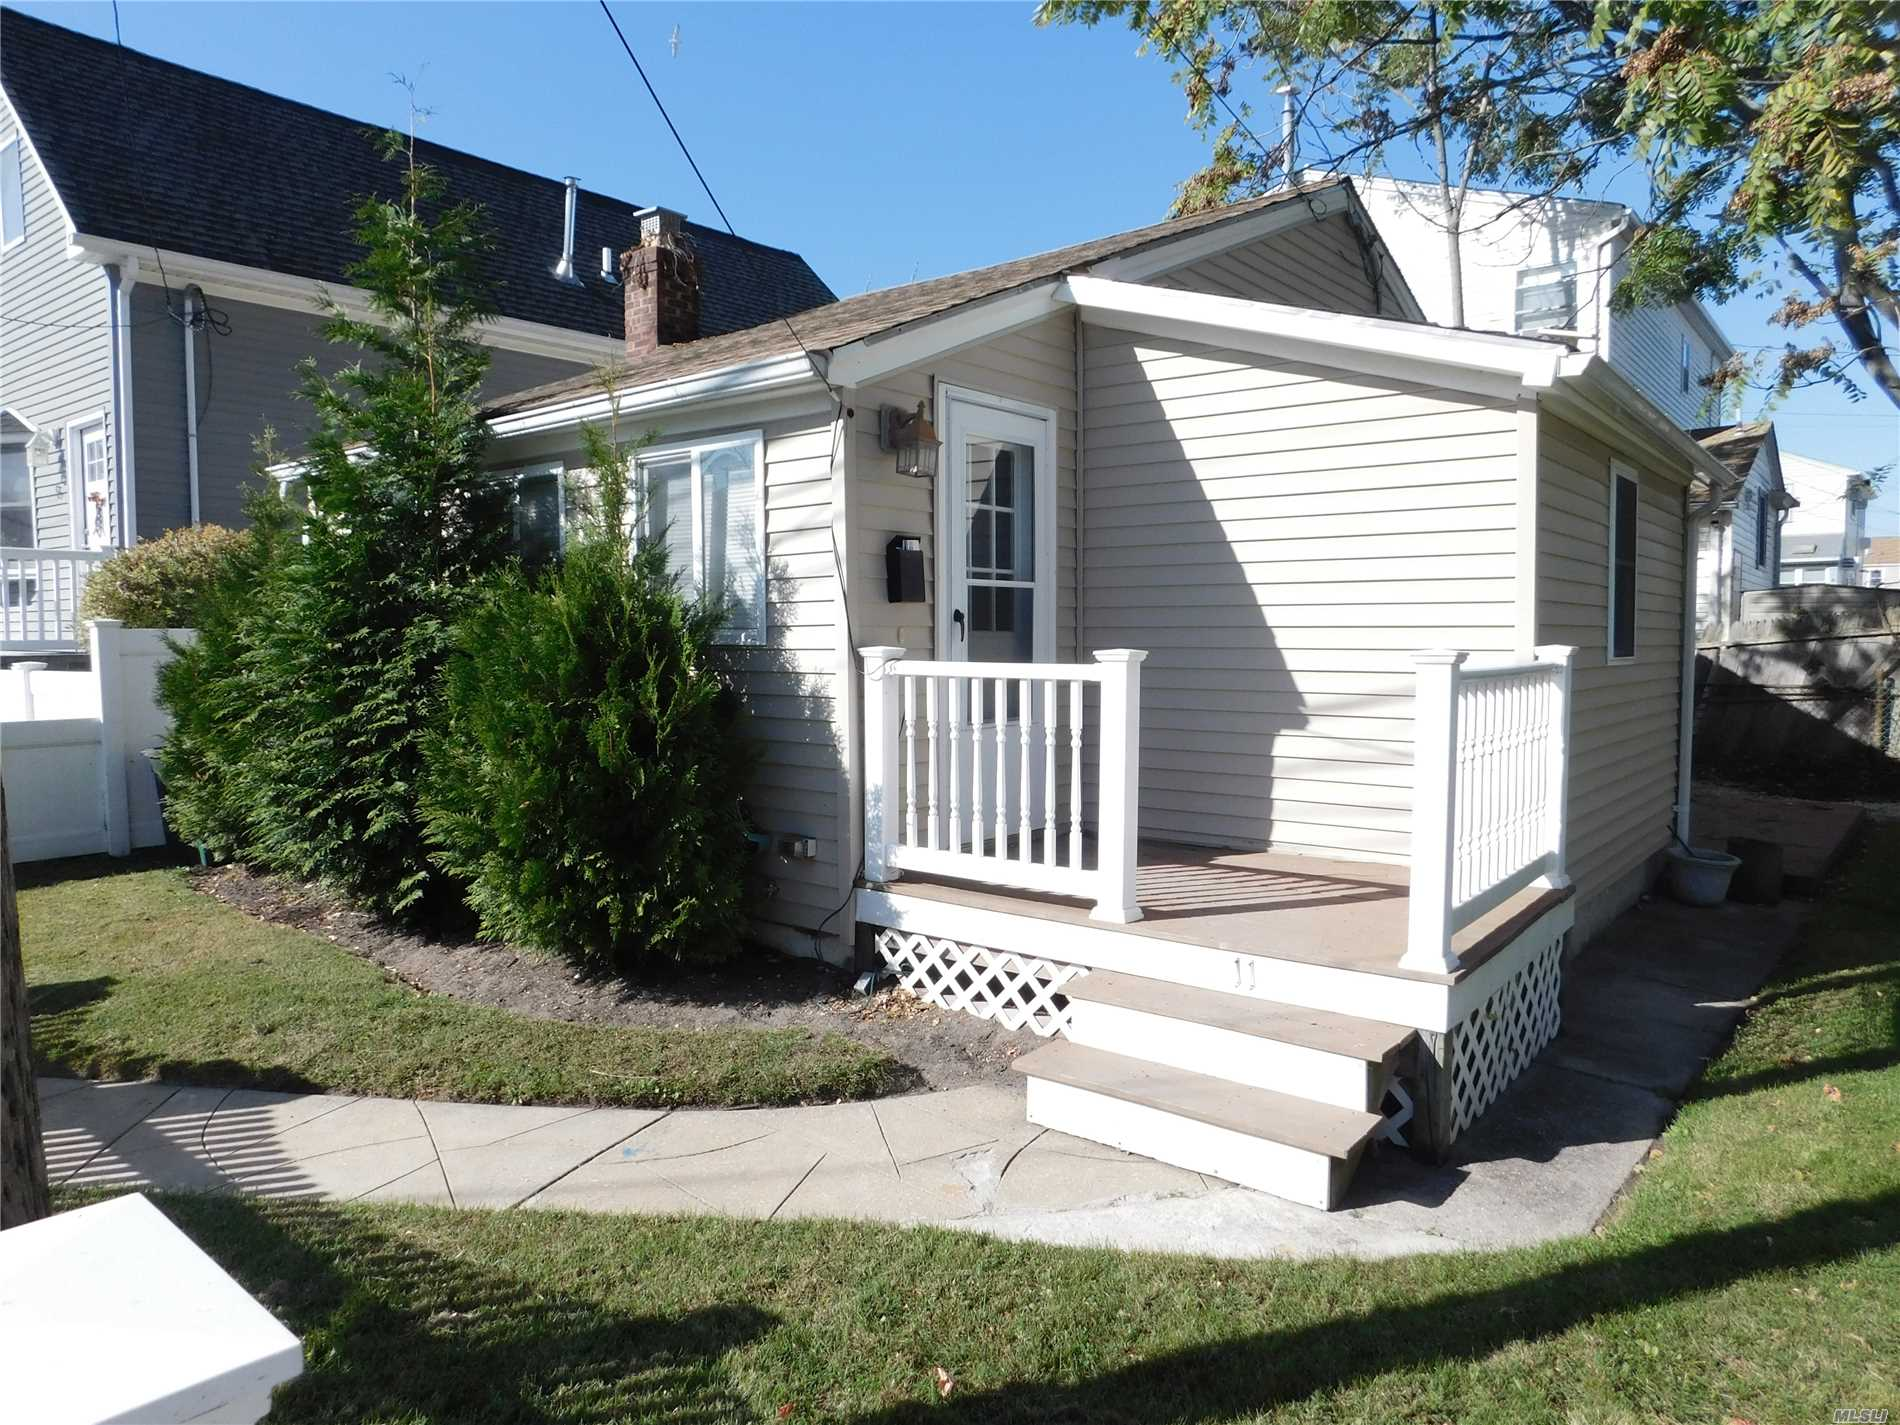 Fully Renovated! Only $5613.75 Taxes Without Star Exemption. No Village Taxes. Double Lot. New Pvc Fence. Recently Sided W/Thermal Pane Windows, Newer Roof, Updated Granite Kit W/Ss Appls, New Gas Boiler, New Electric, New Washer/Dryer, Full Attic Space, Next To Park!